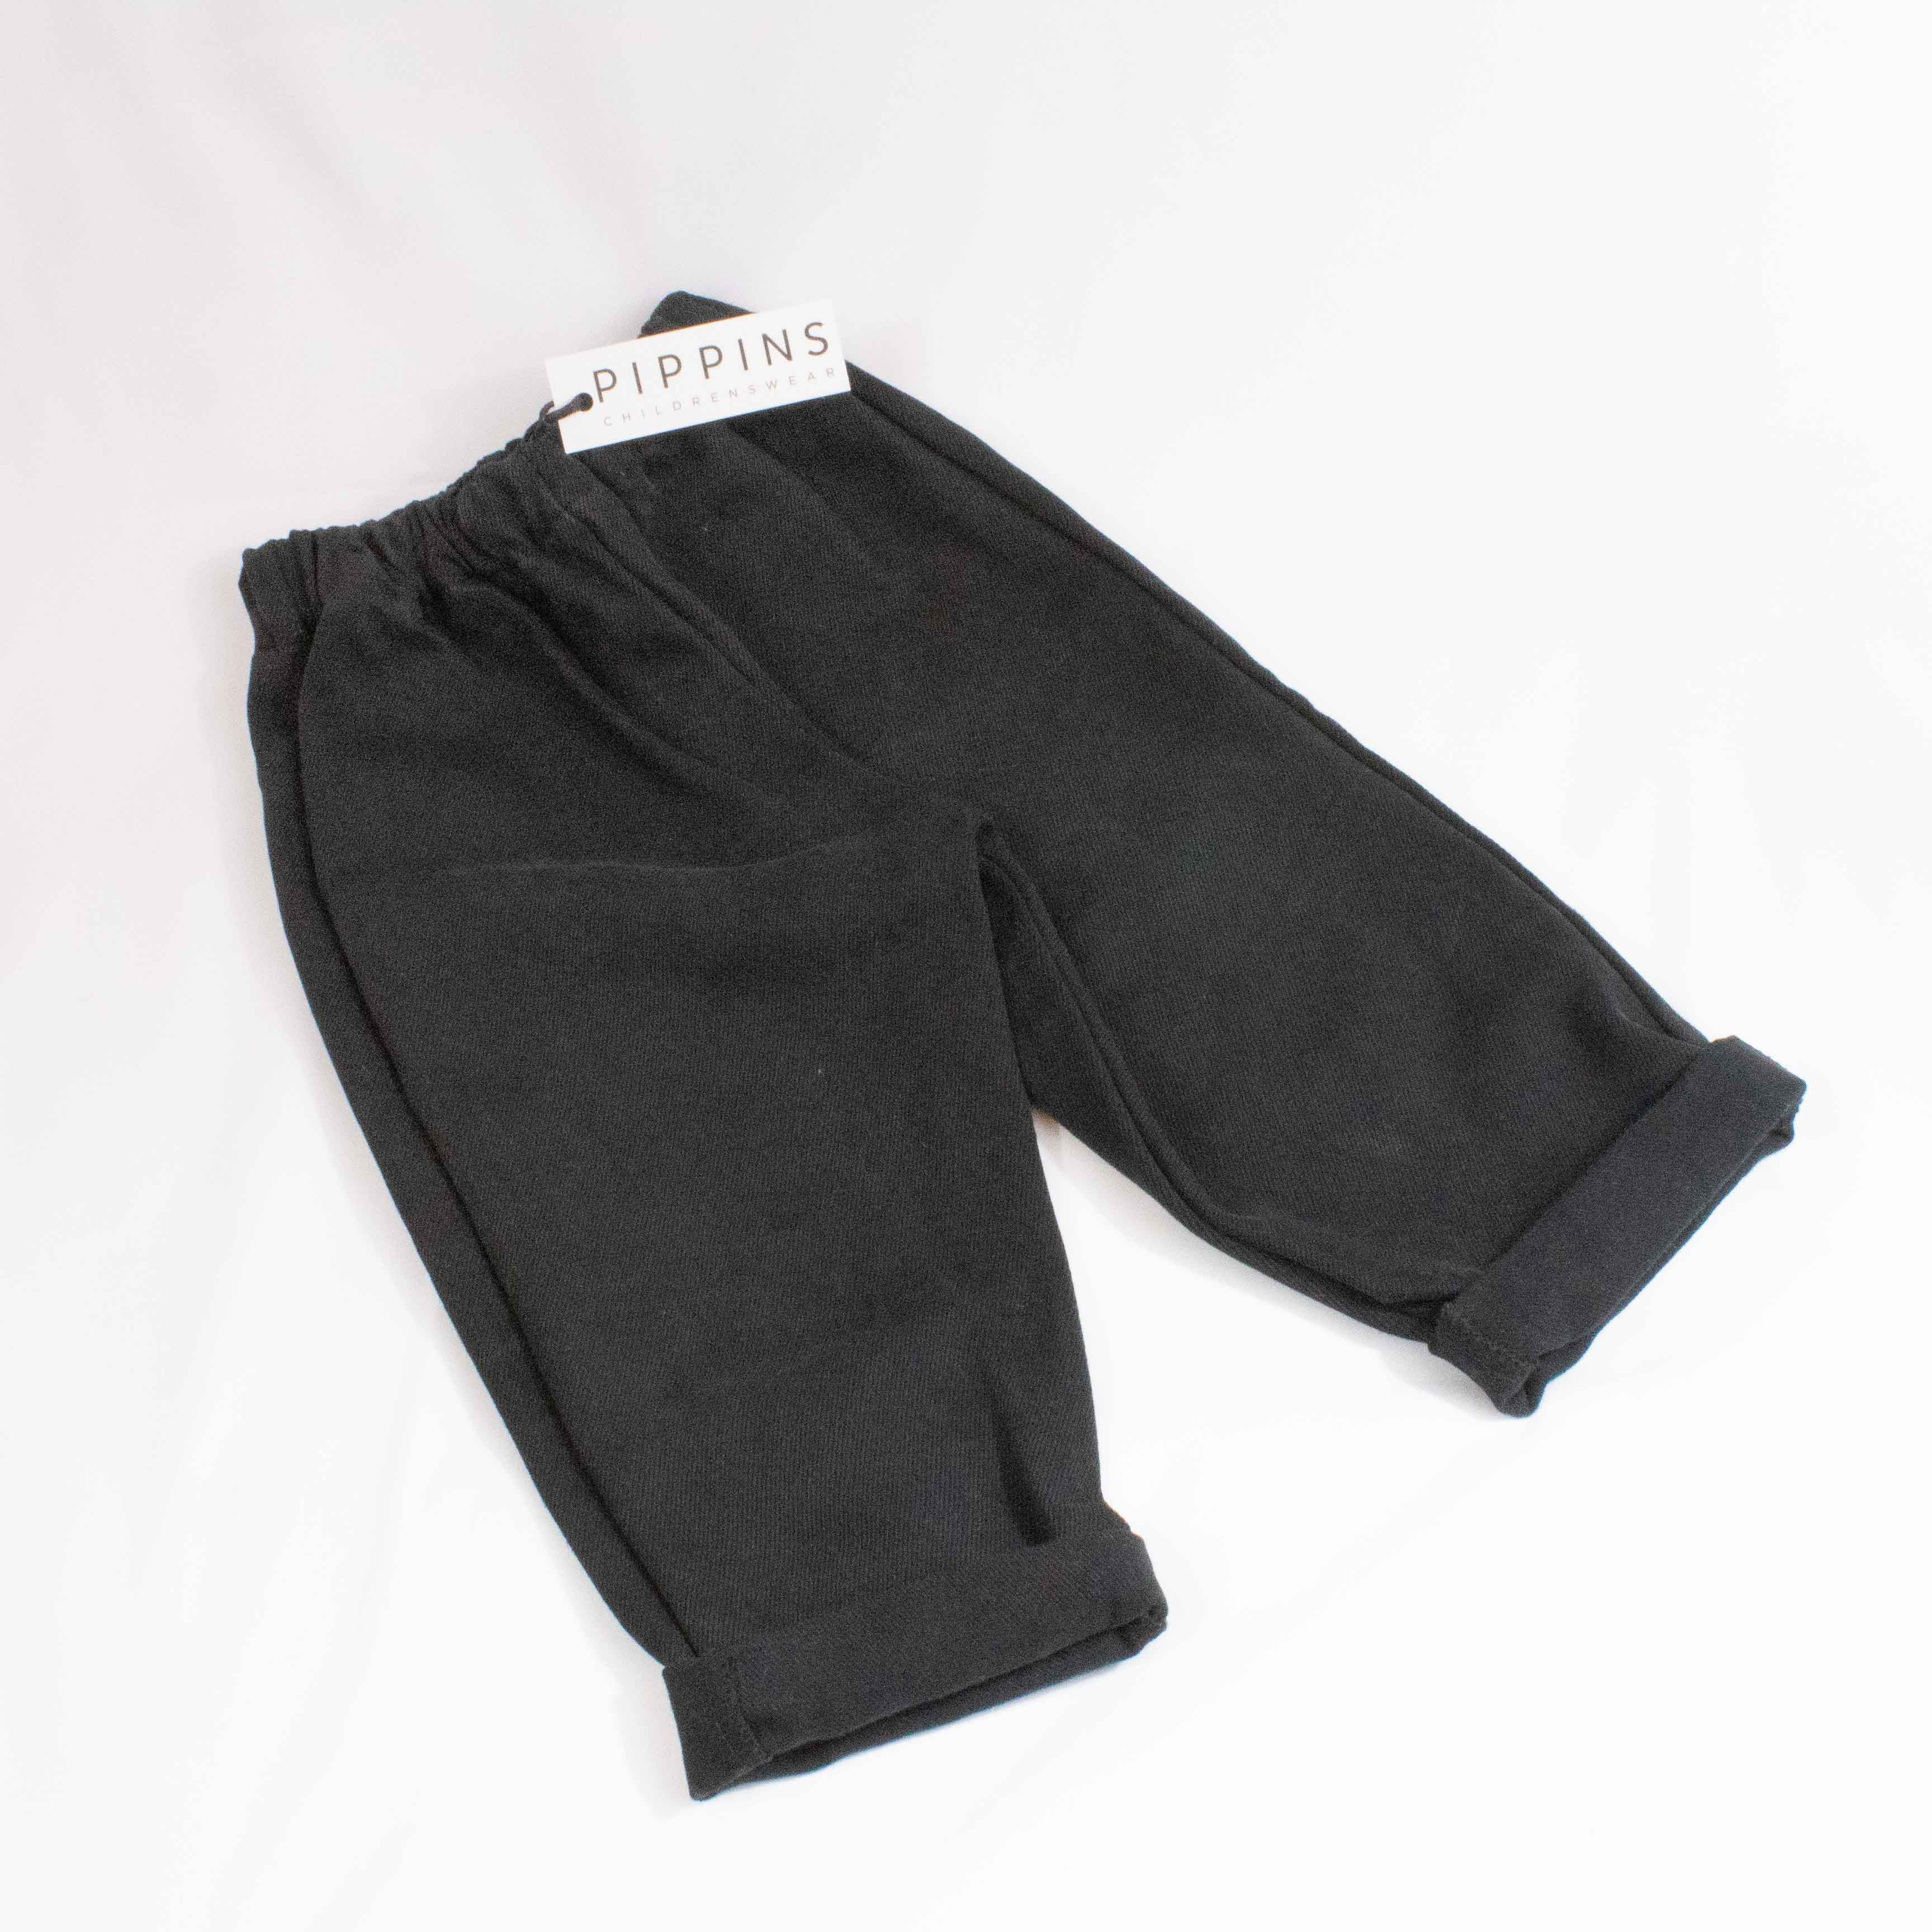 Pippins - Jeans Black (12-18 months only)